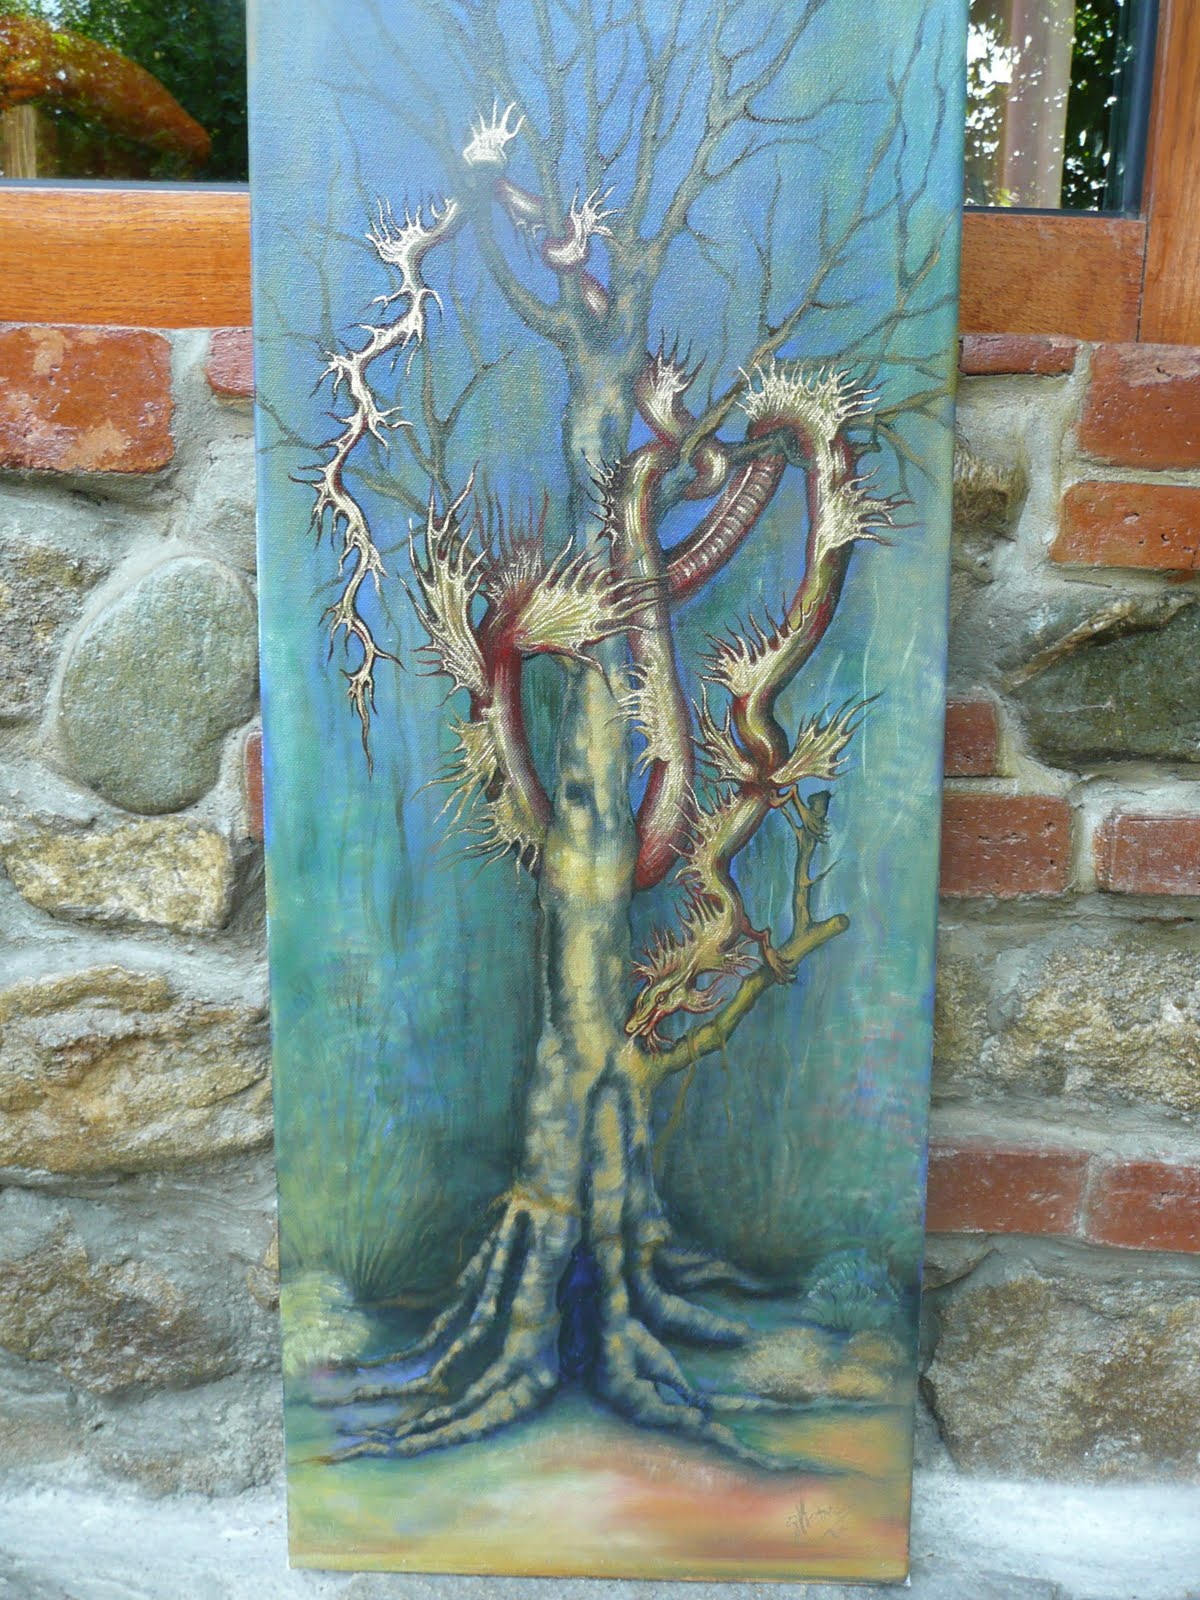 Dragon Painting - Oil / Canvas | Oil Painting Gallery